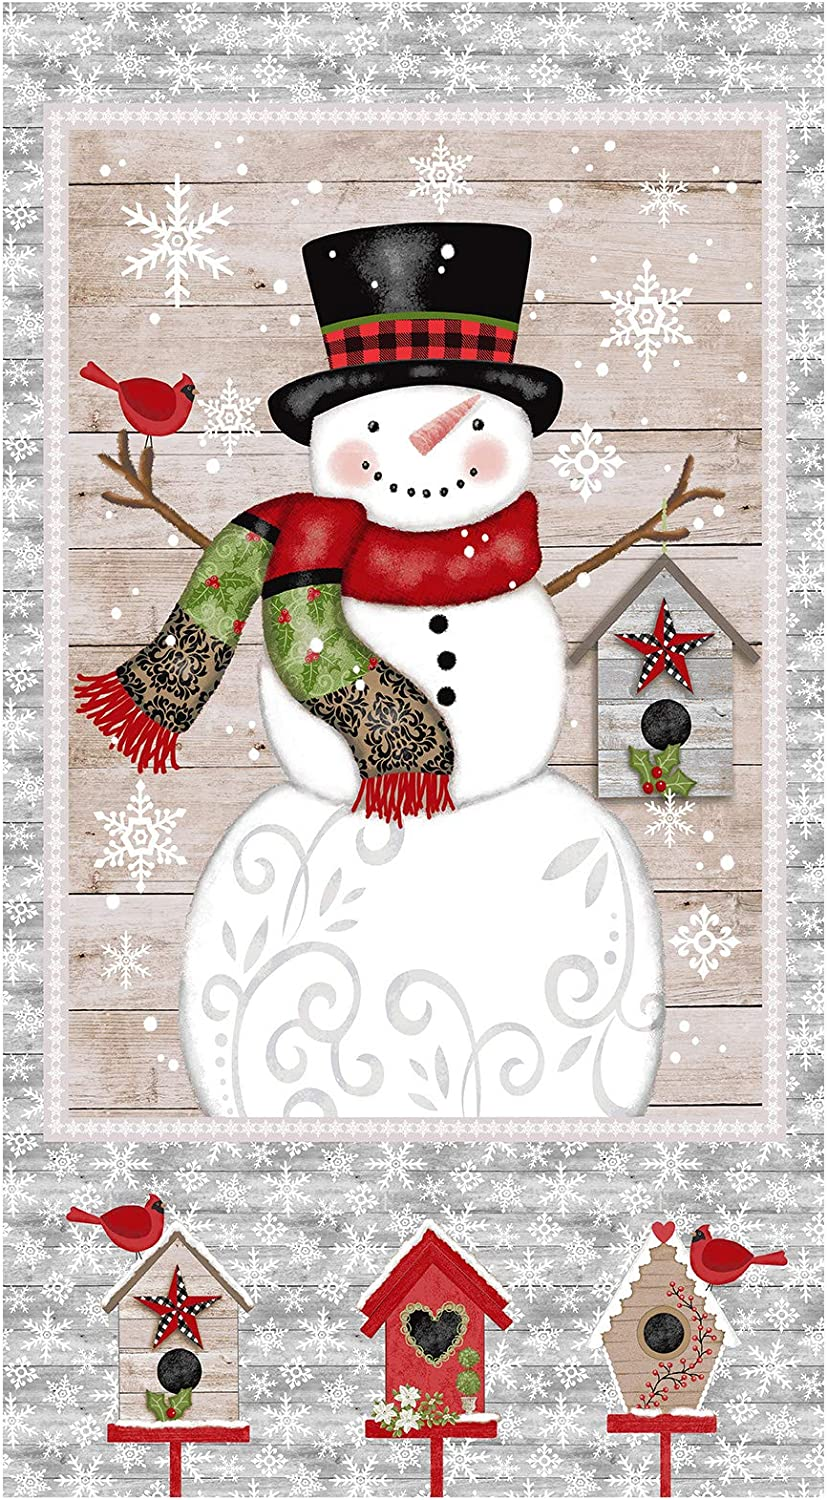 Snow Place Like Home Snowman 24in Panel Grey Quilt Fabric